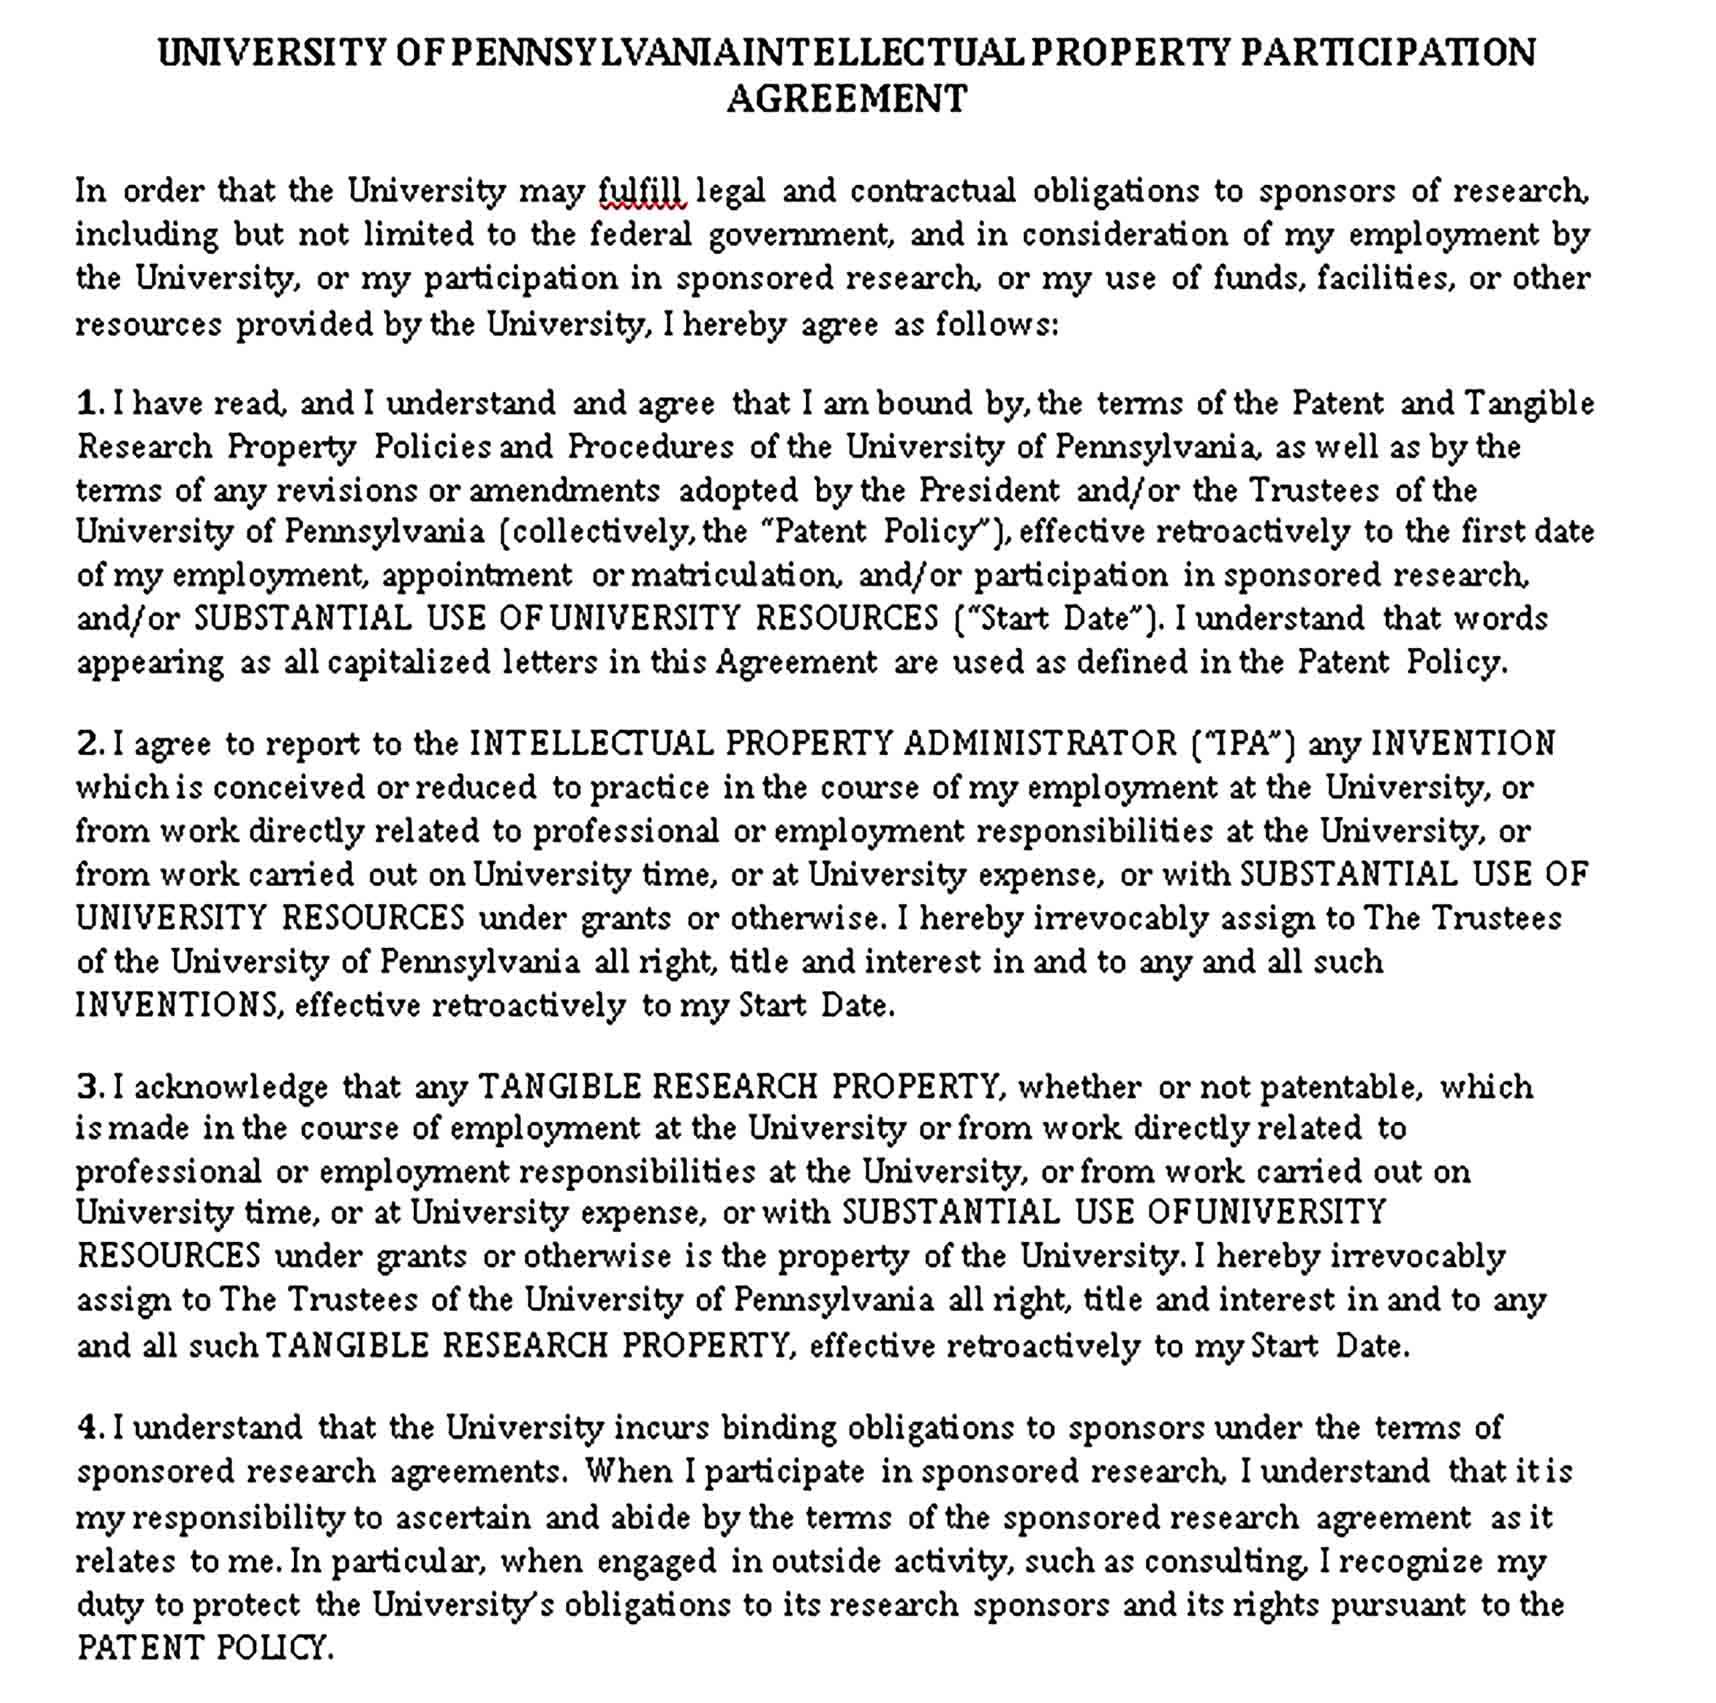 Templates Intellectual Property Participation Agreement Sample